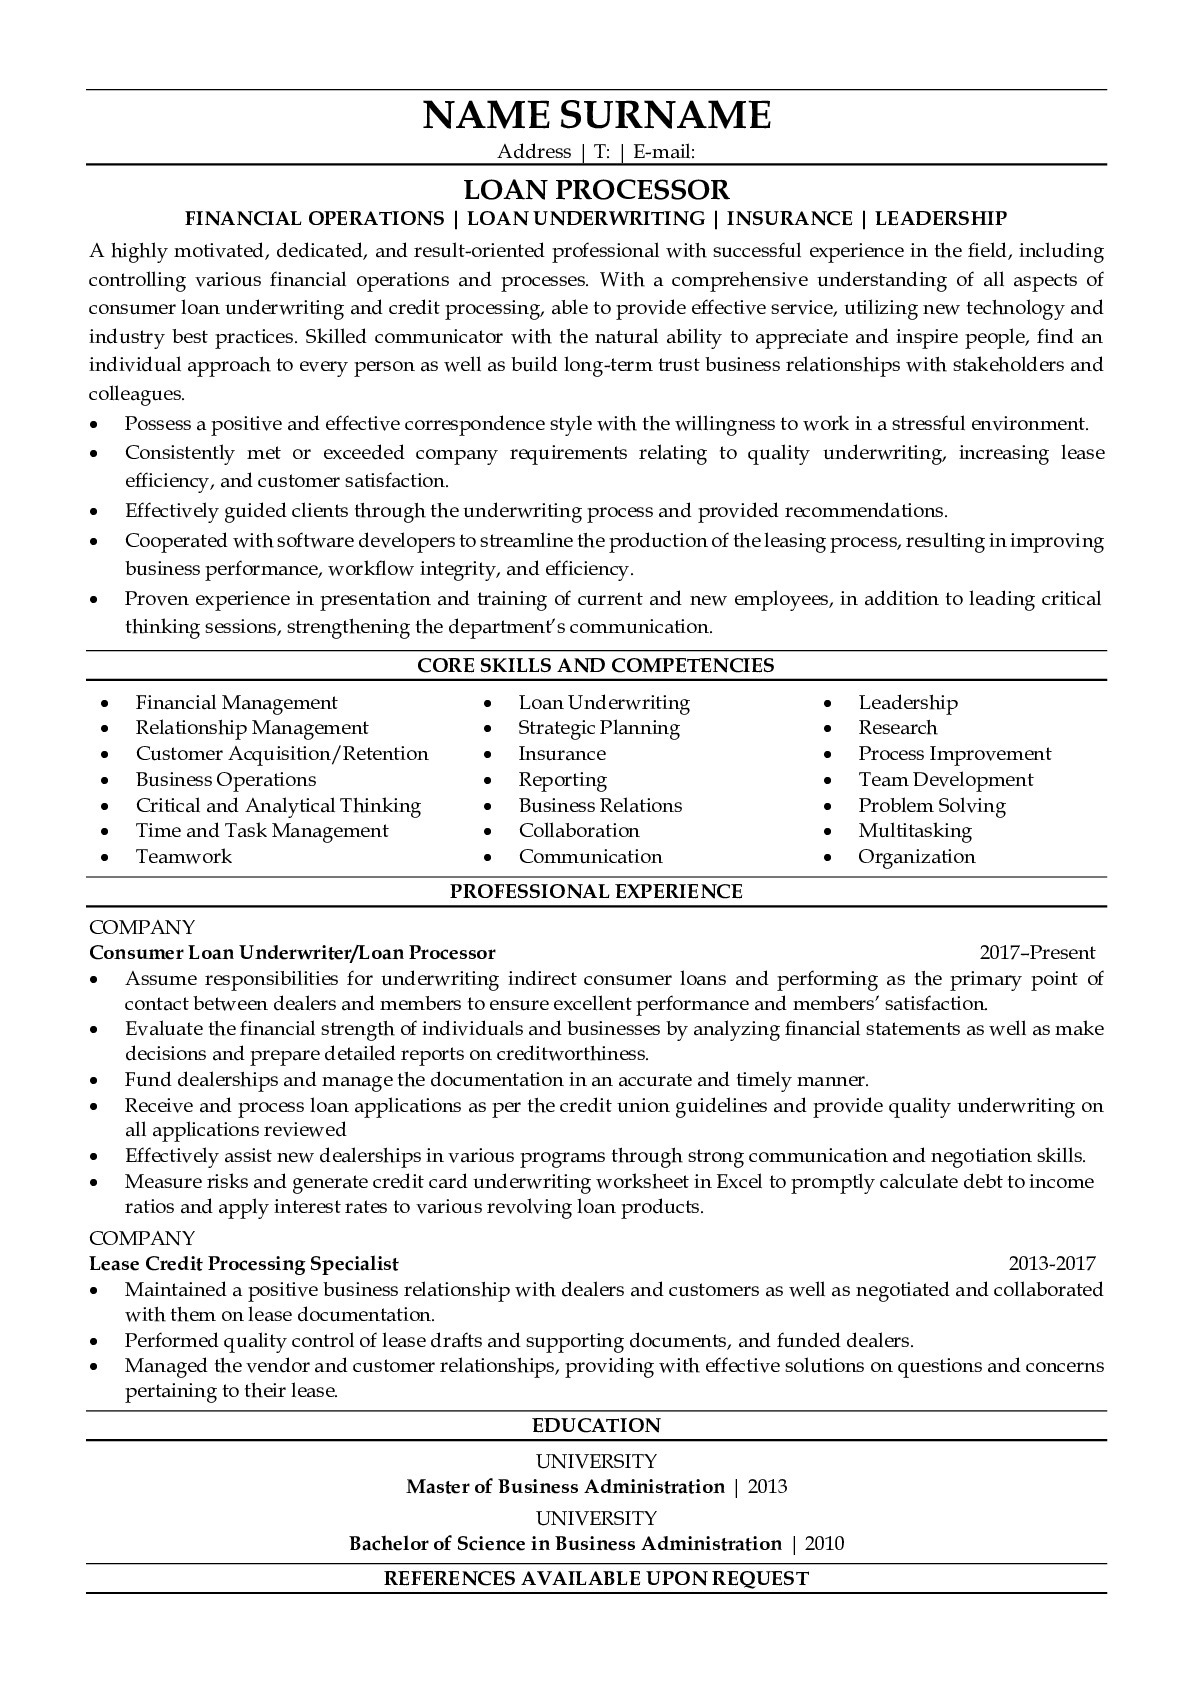 Resume Example for Loan Processor